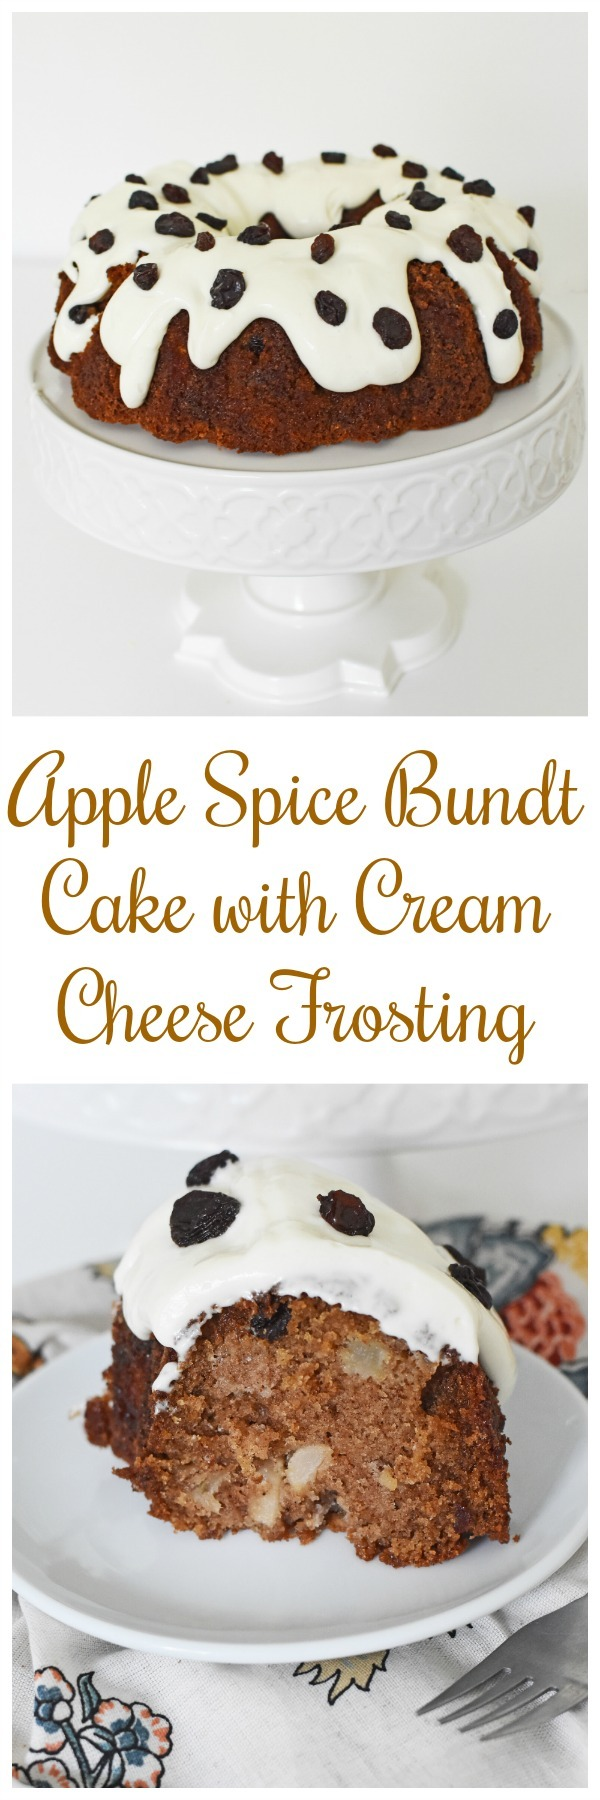 Apple Spice Bundt Cake with Cream Cheese Frosting and Raisins